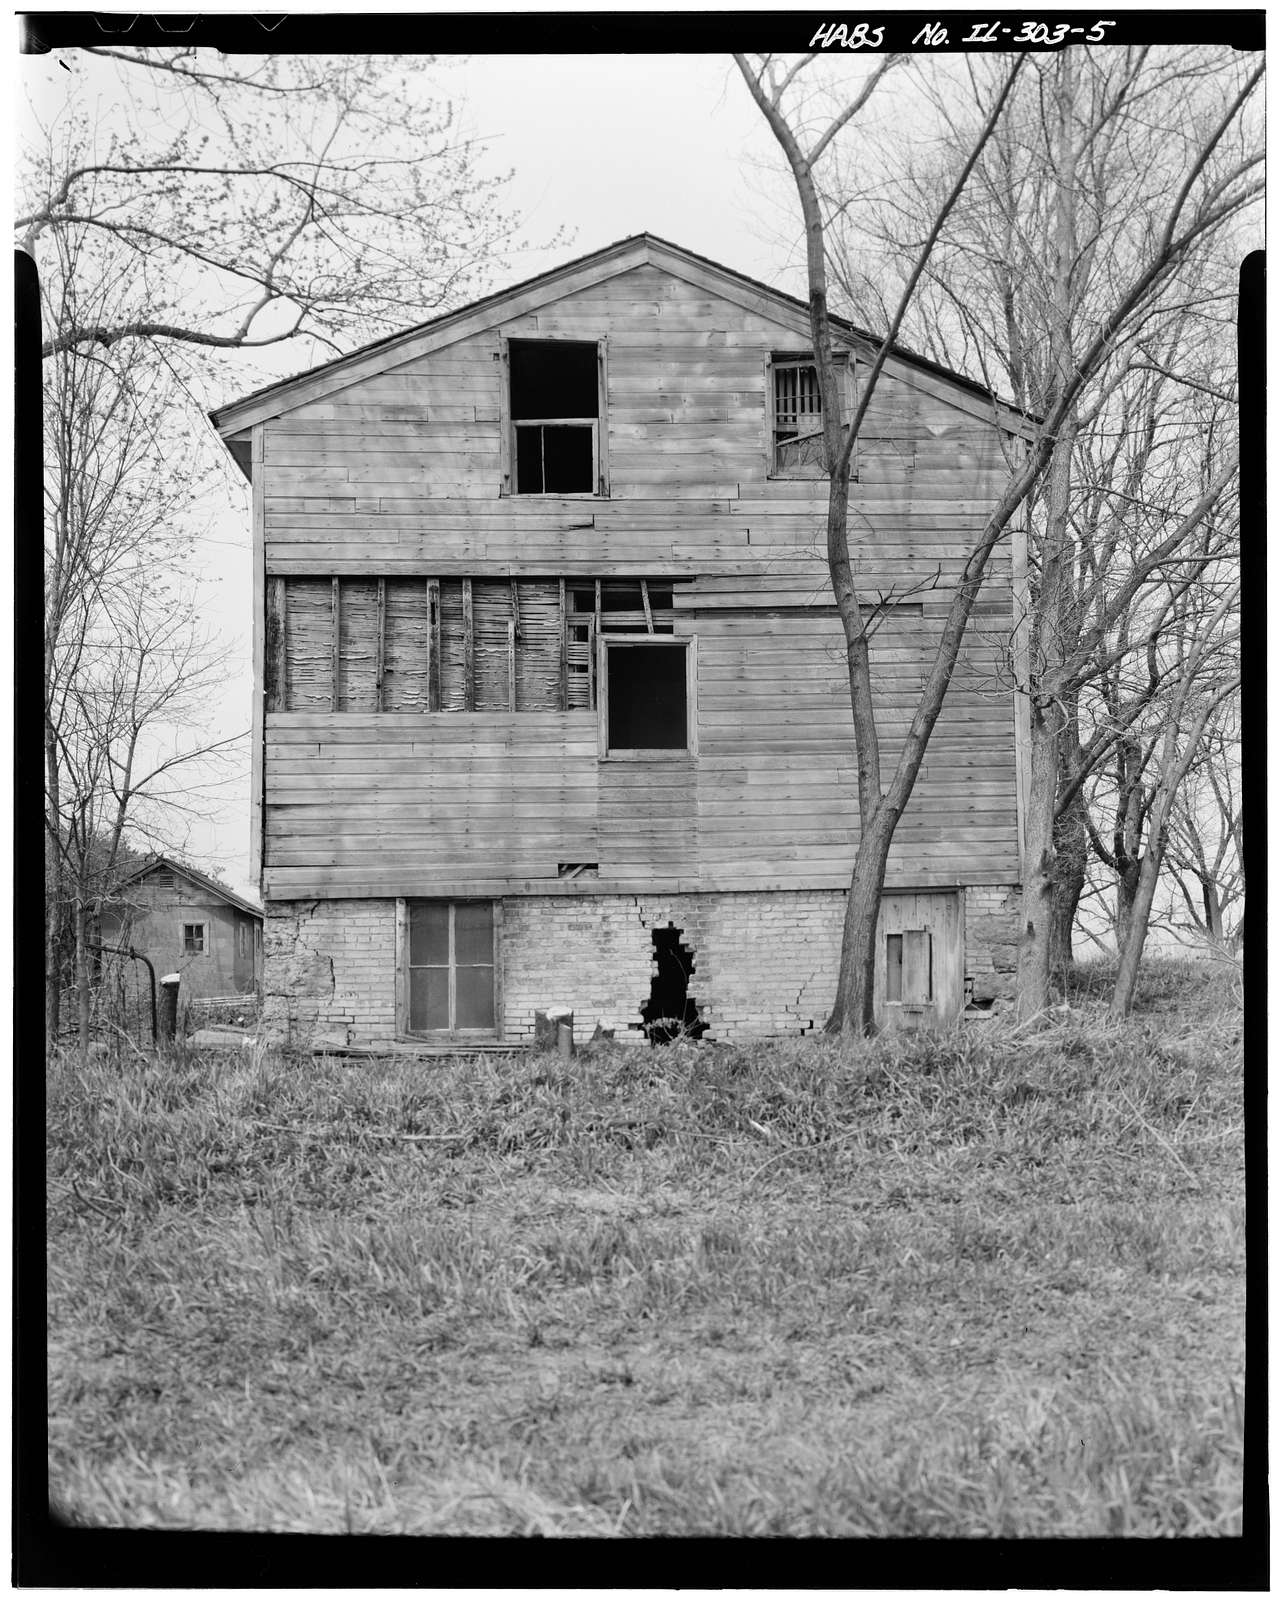 Mowry Brown House, State Route 2, Owen Township, Rockford, Winnebago County, IL